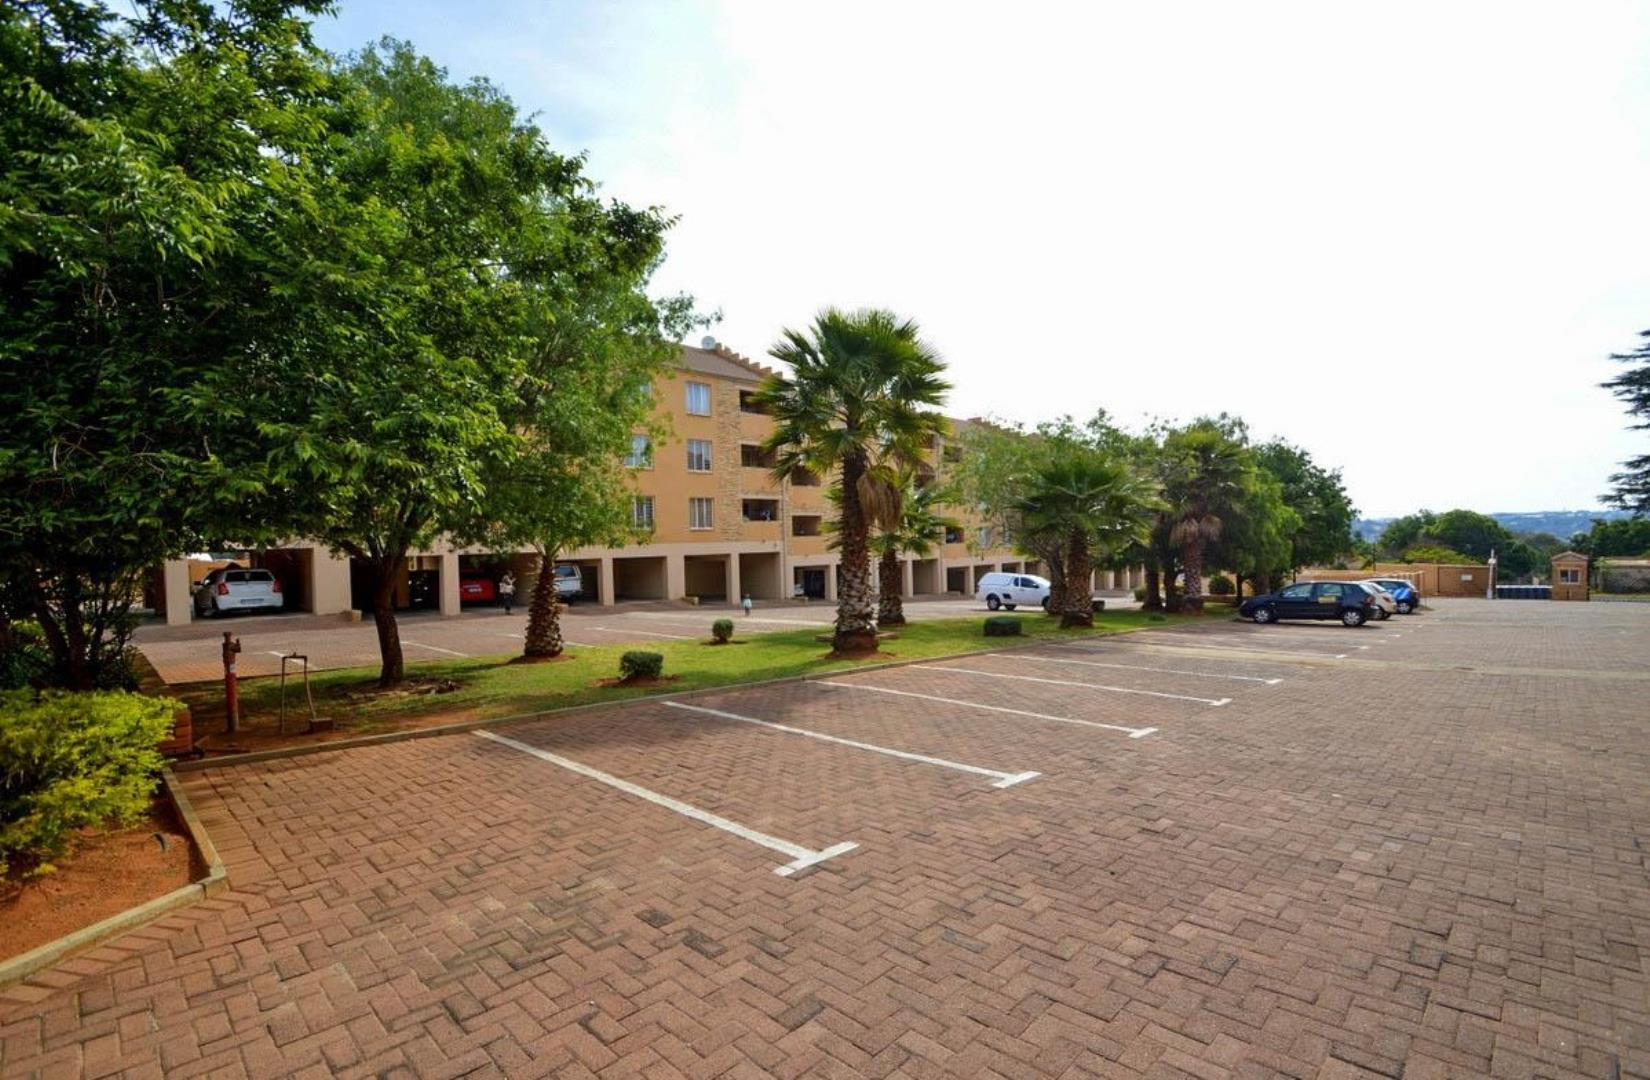 2 Bedroom  Apartment for Sale in Roodepoort - Gauteng